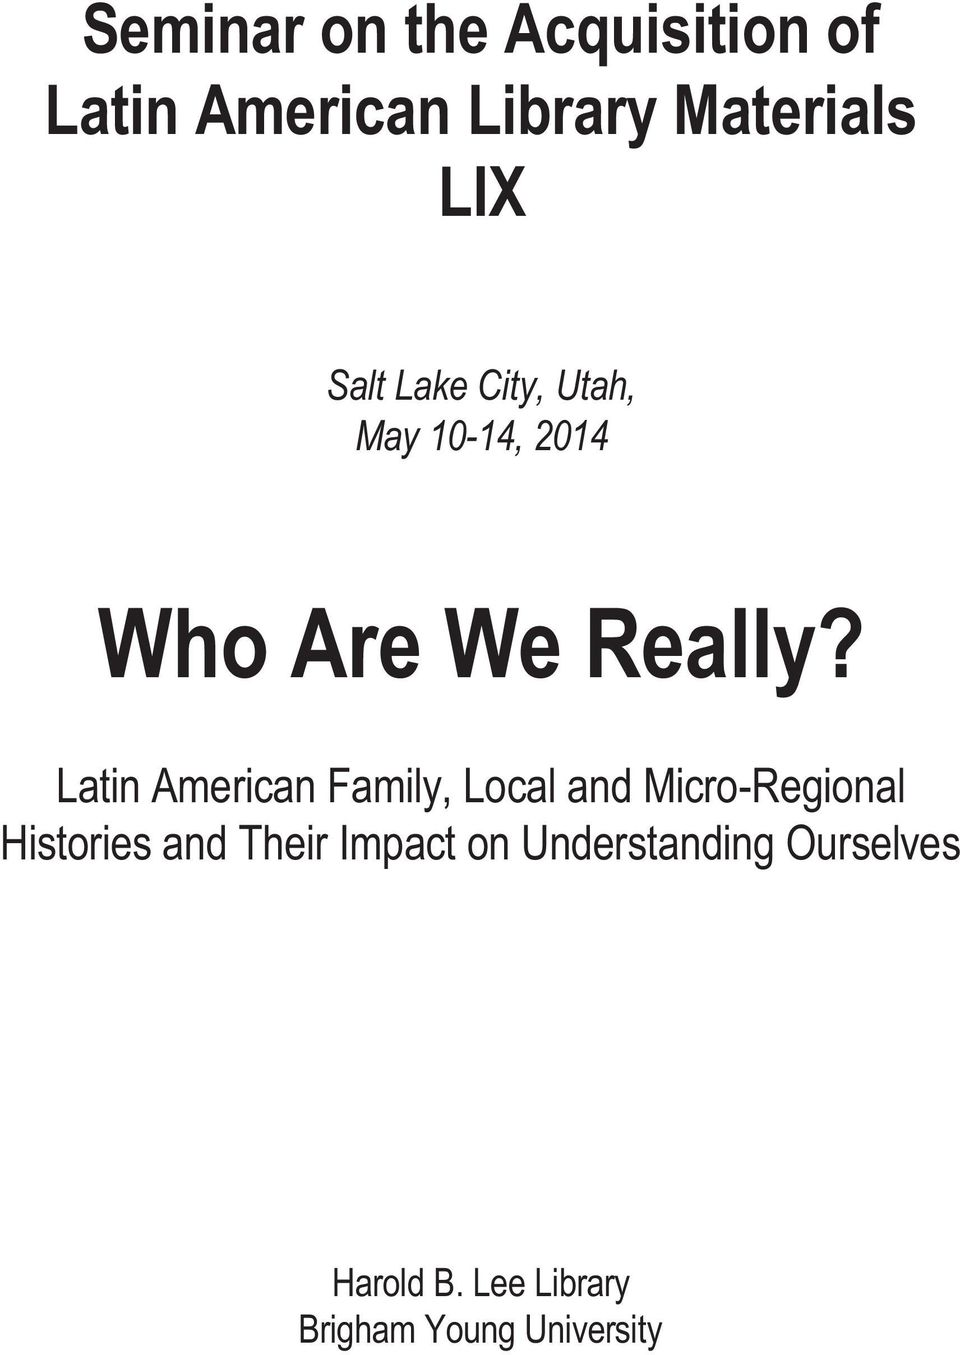 Latin American Family, Local and Micro-Regional Histories and Their